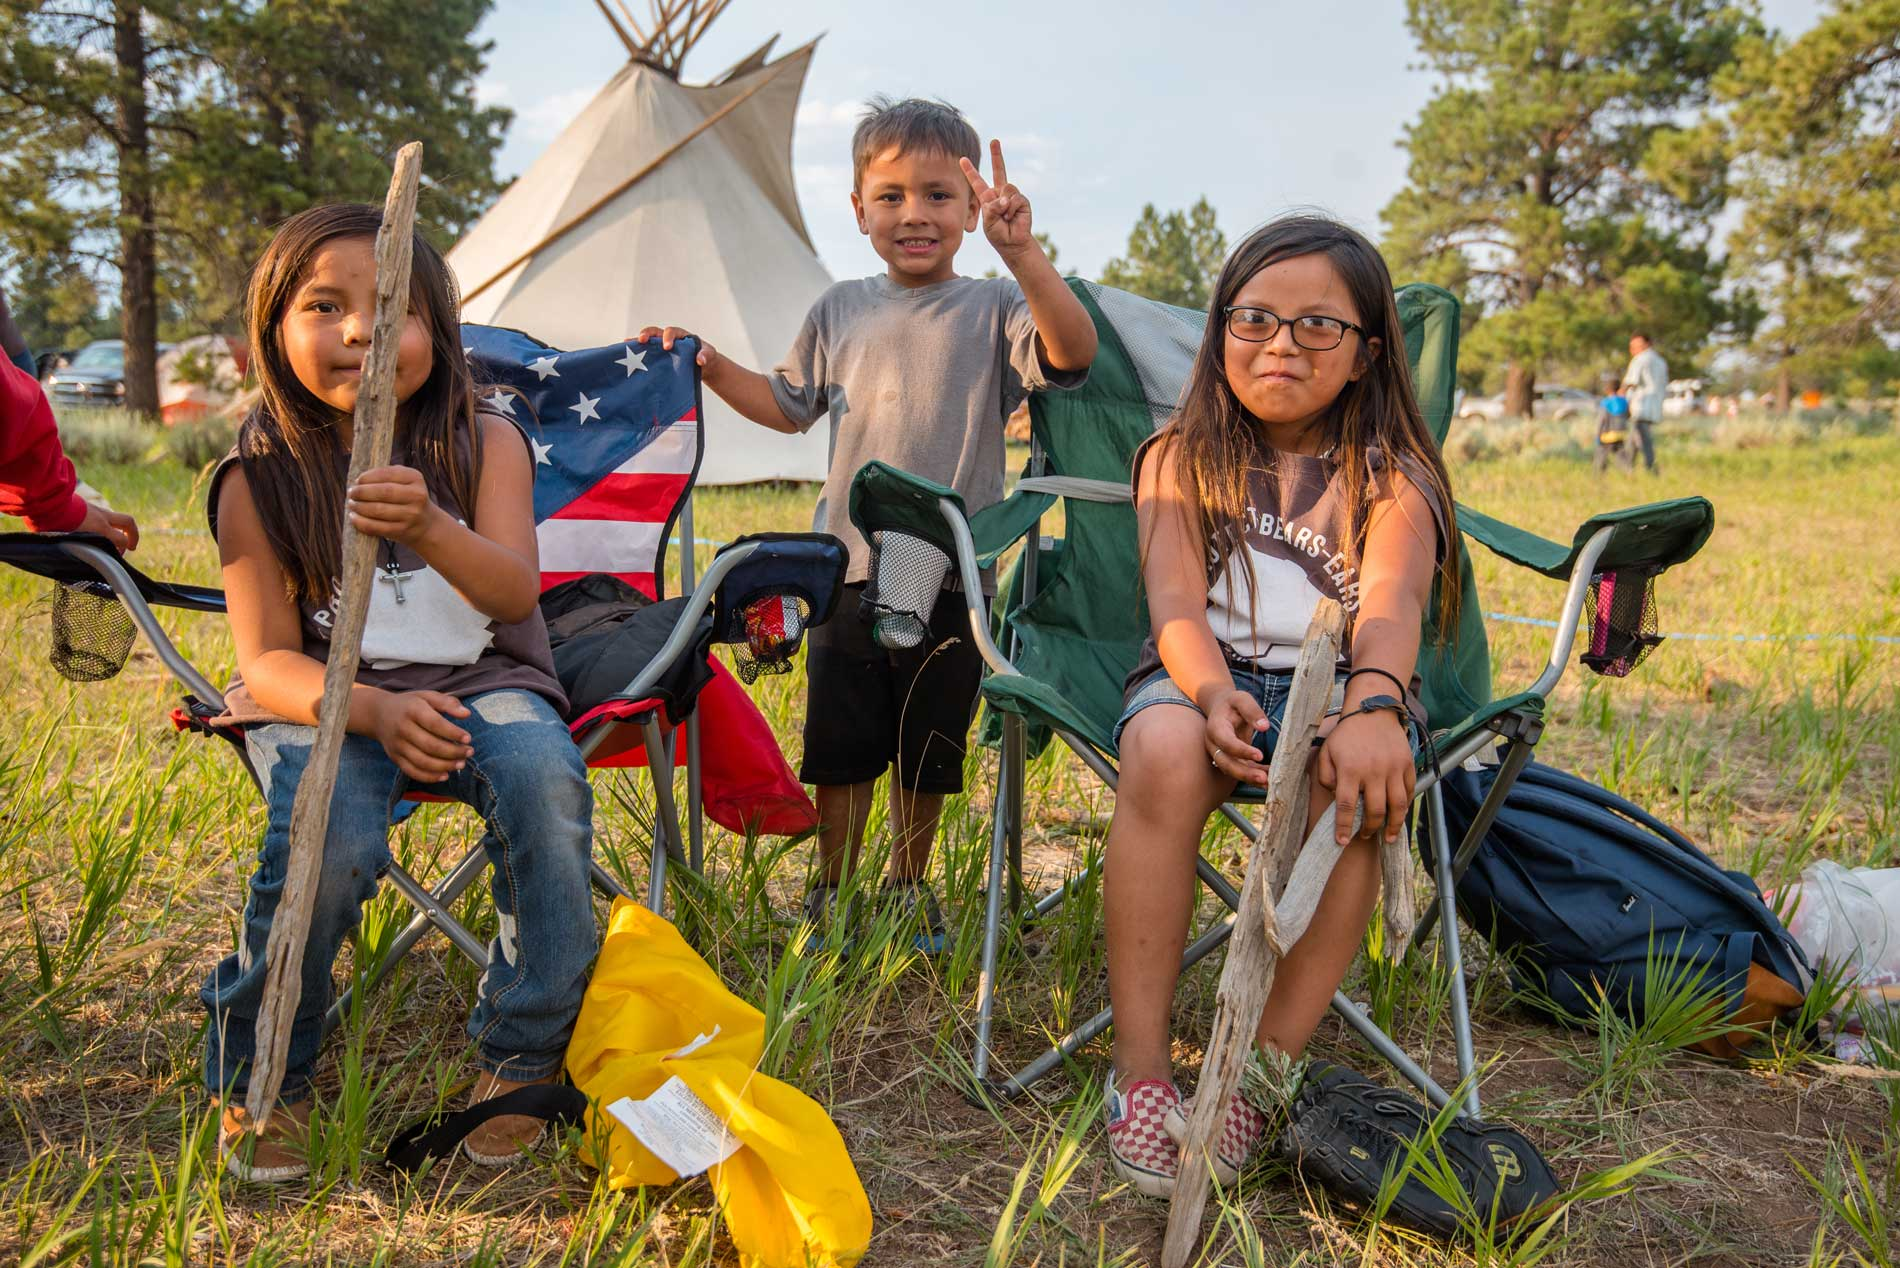 Kids at Bears Ears gathering. Photo by Blake McCord